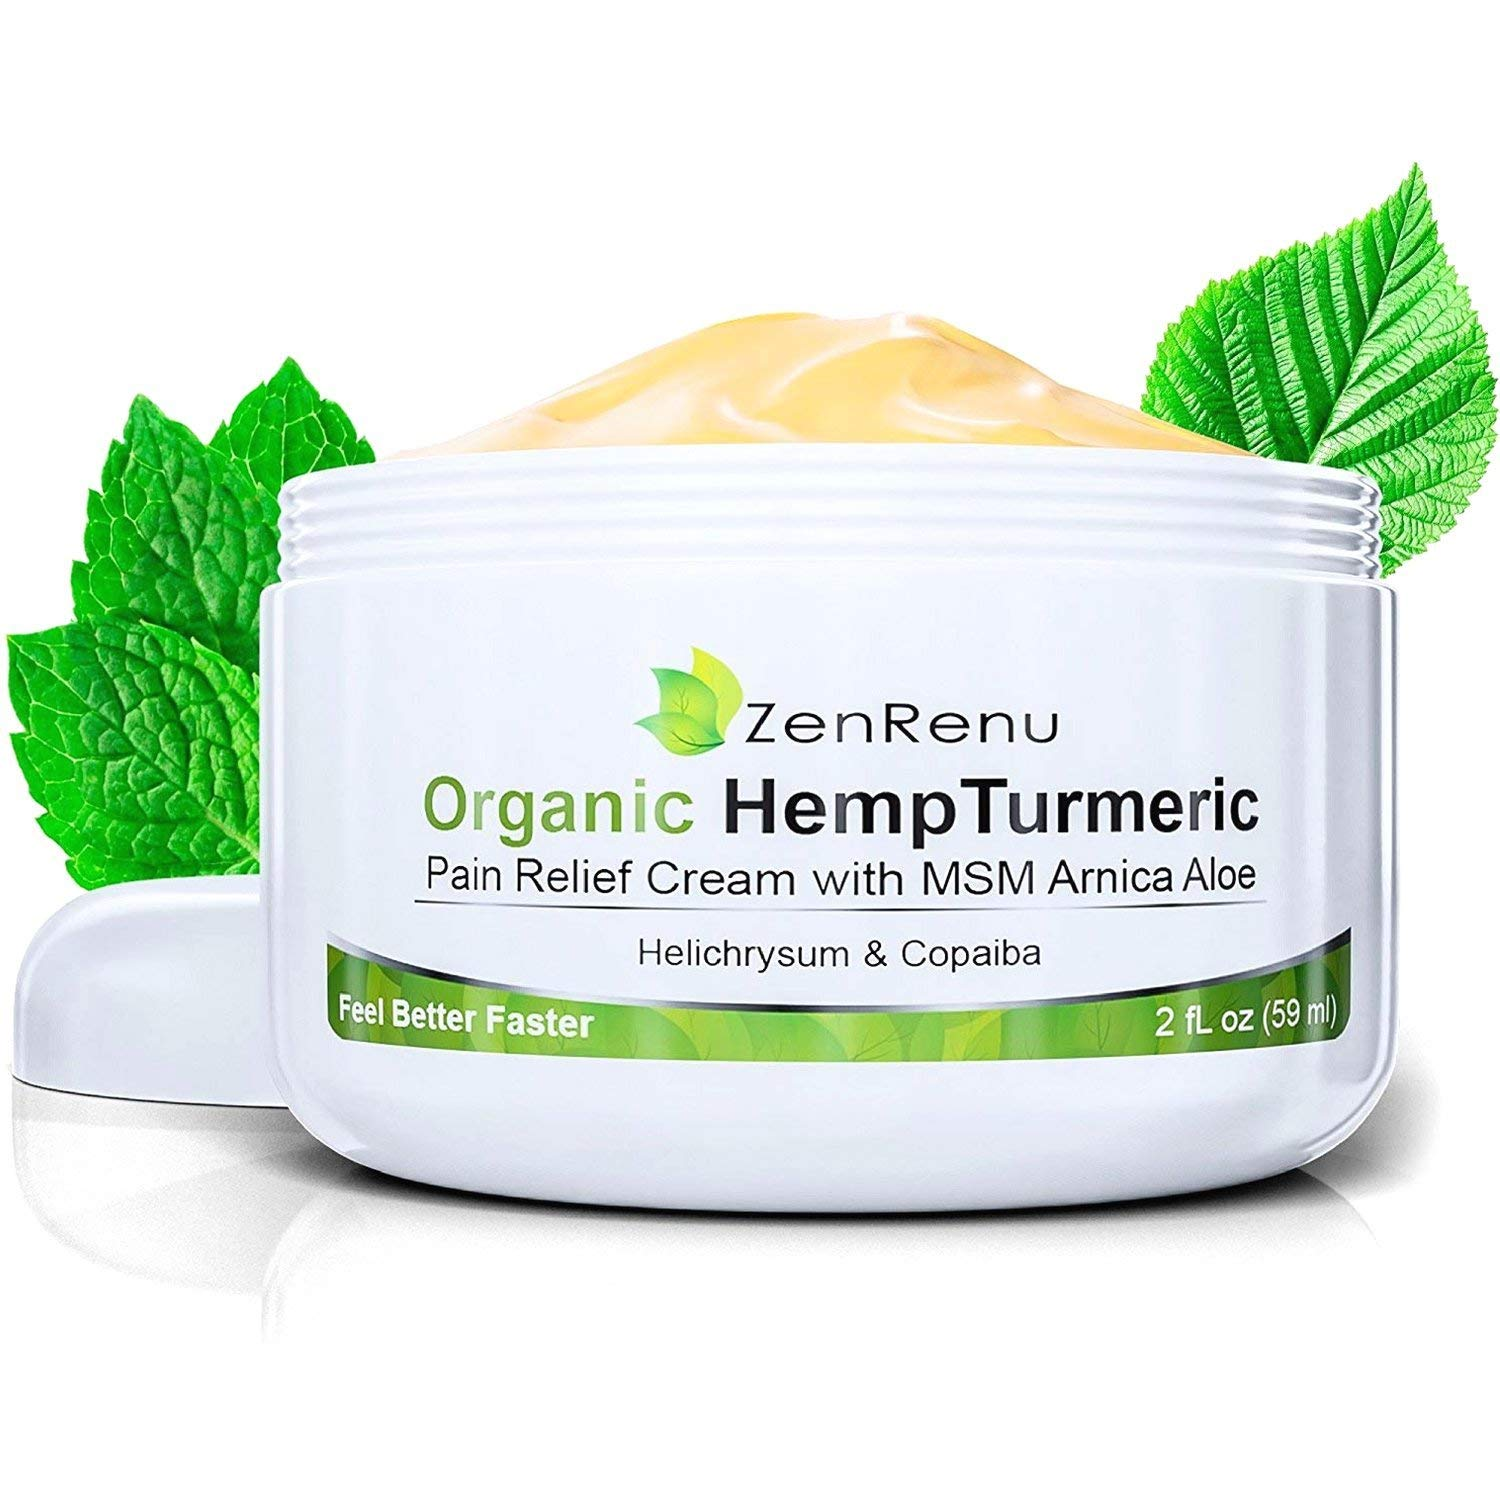 Review of Organic Hemp Pain Relief Cream by ZenRenu